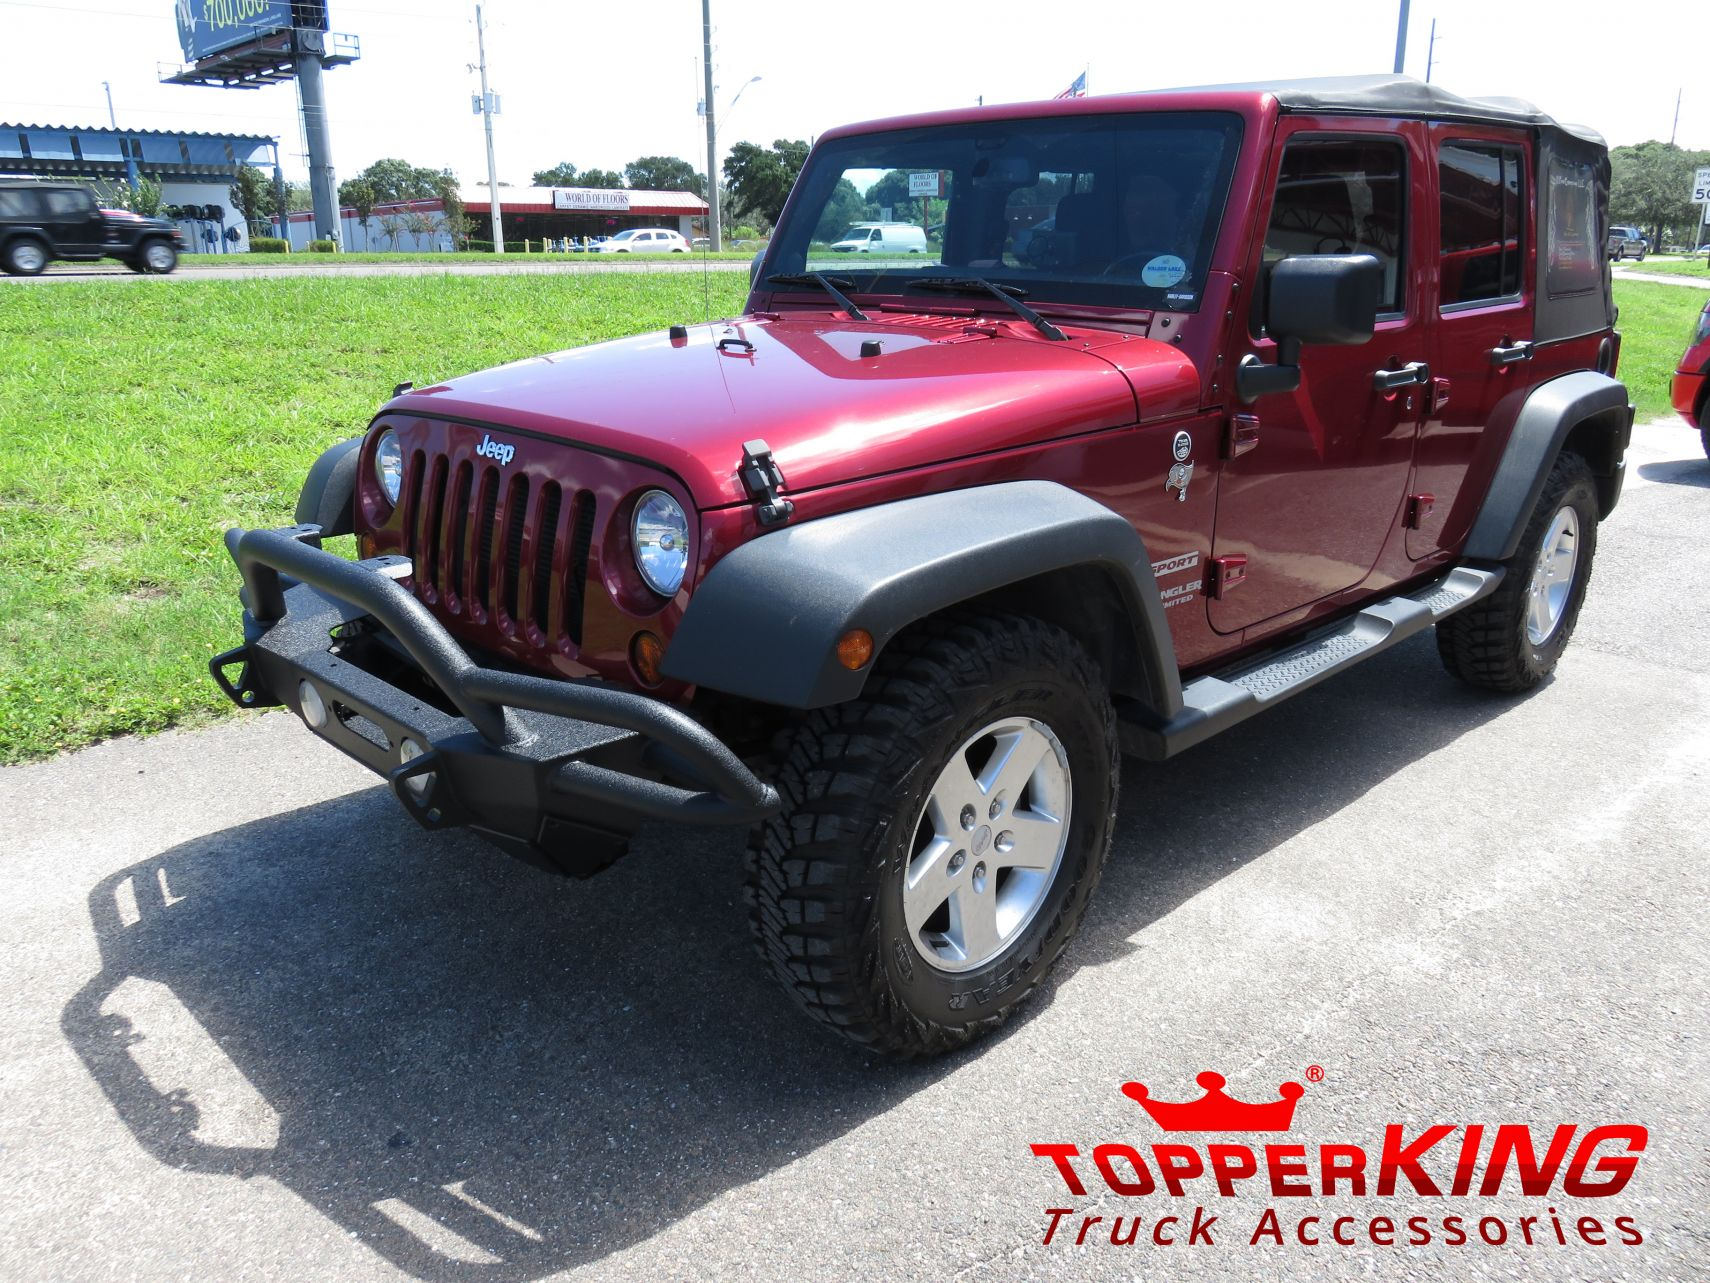 2015 Jeep Wrangler Smittybilt Bumper, Fender Flares, And Custom Hitch By  TopperKING In Brandon ...